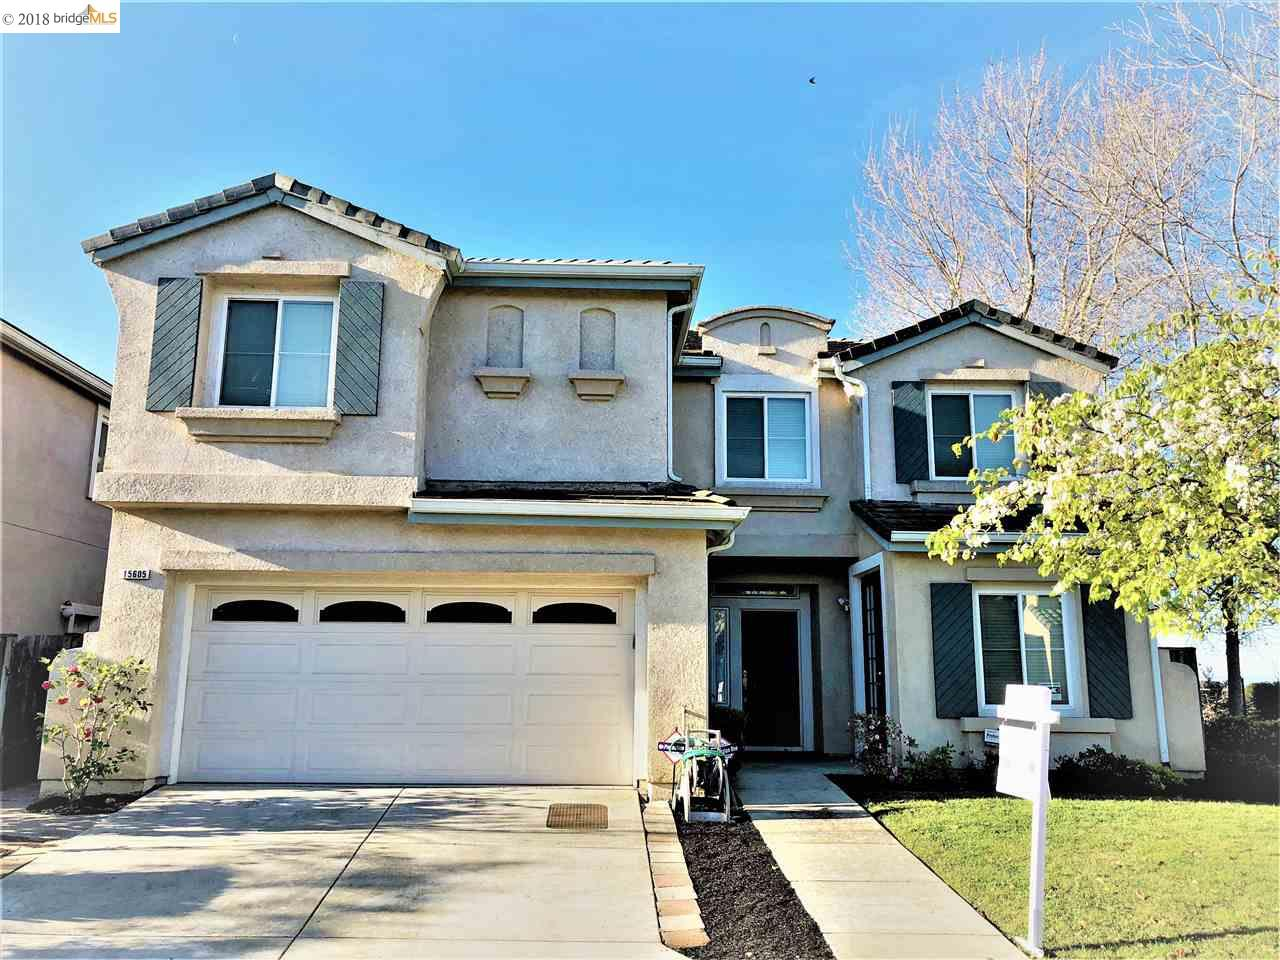 15605 Baypoint Ave | SAN LEANDRO | 2564 | 94579